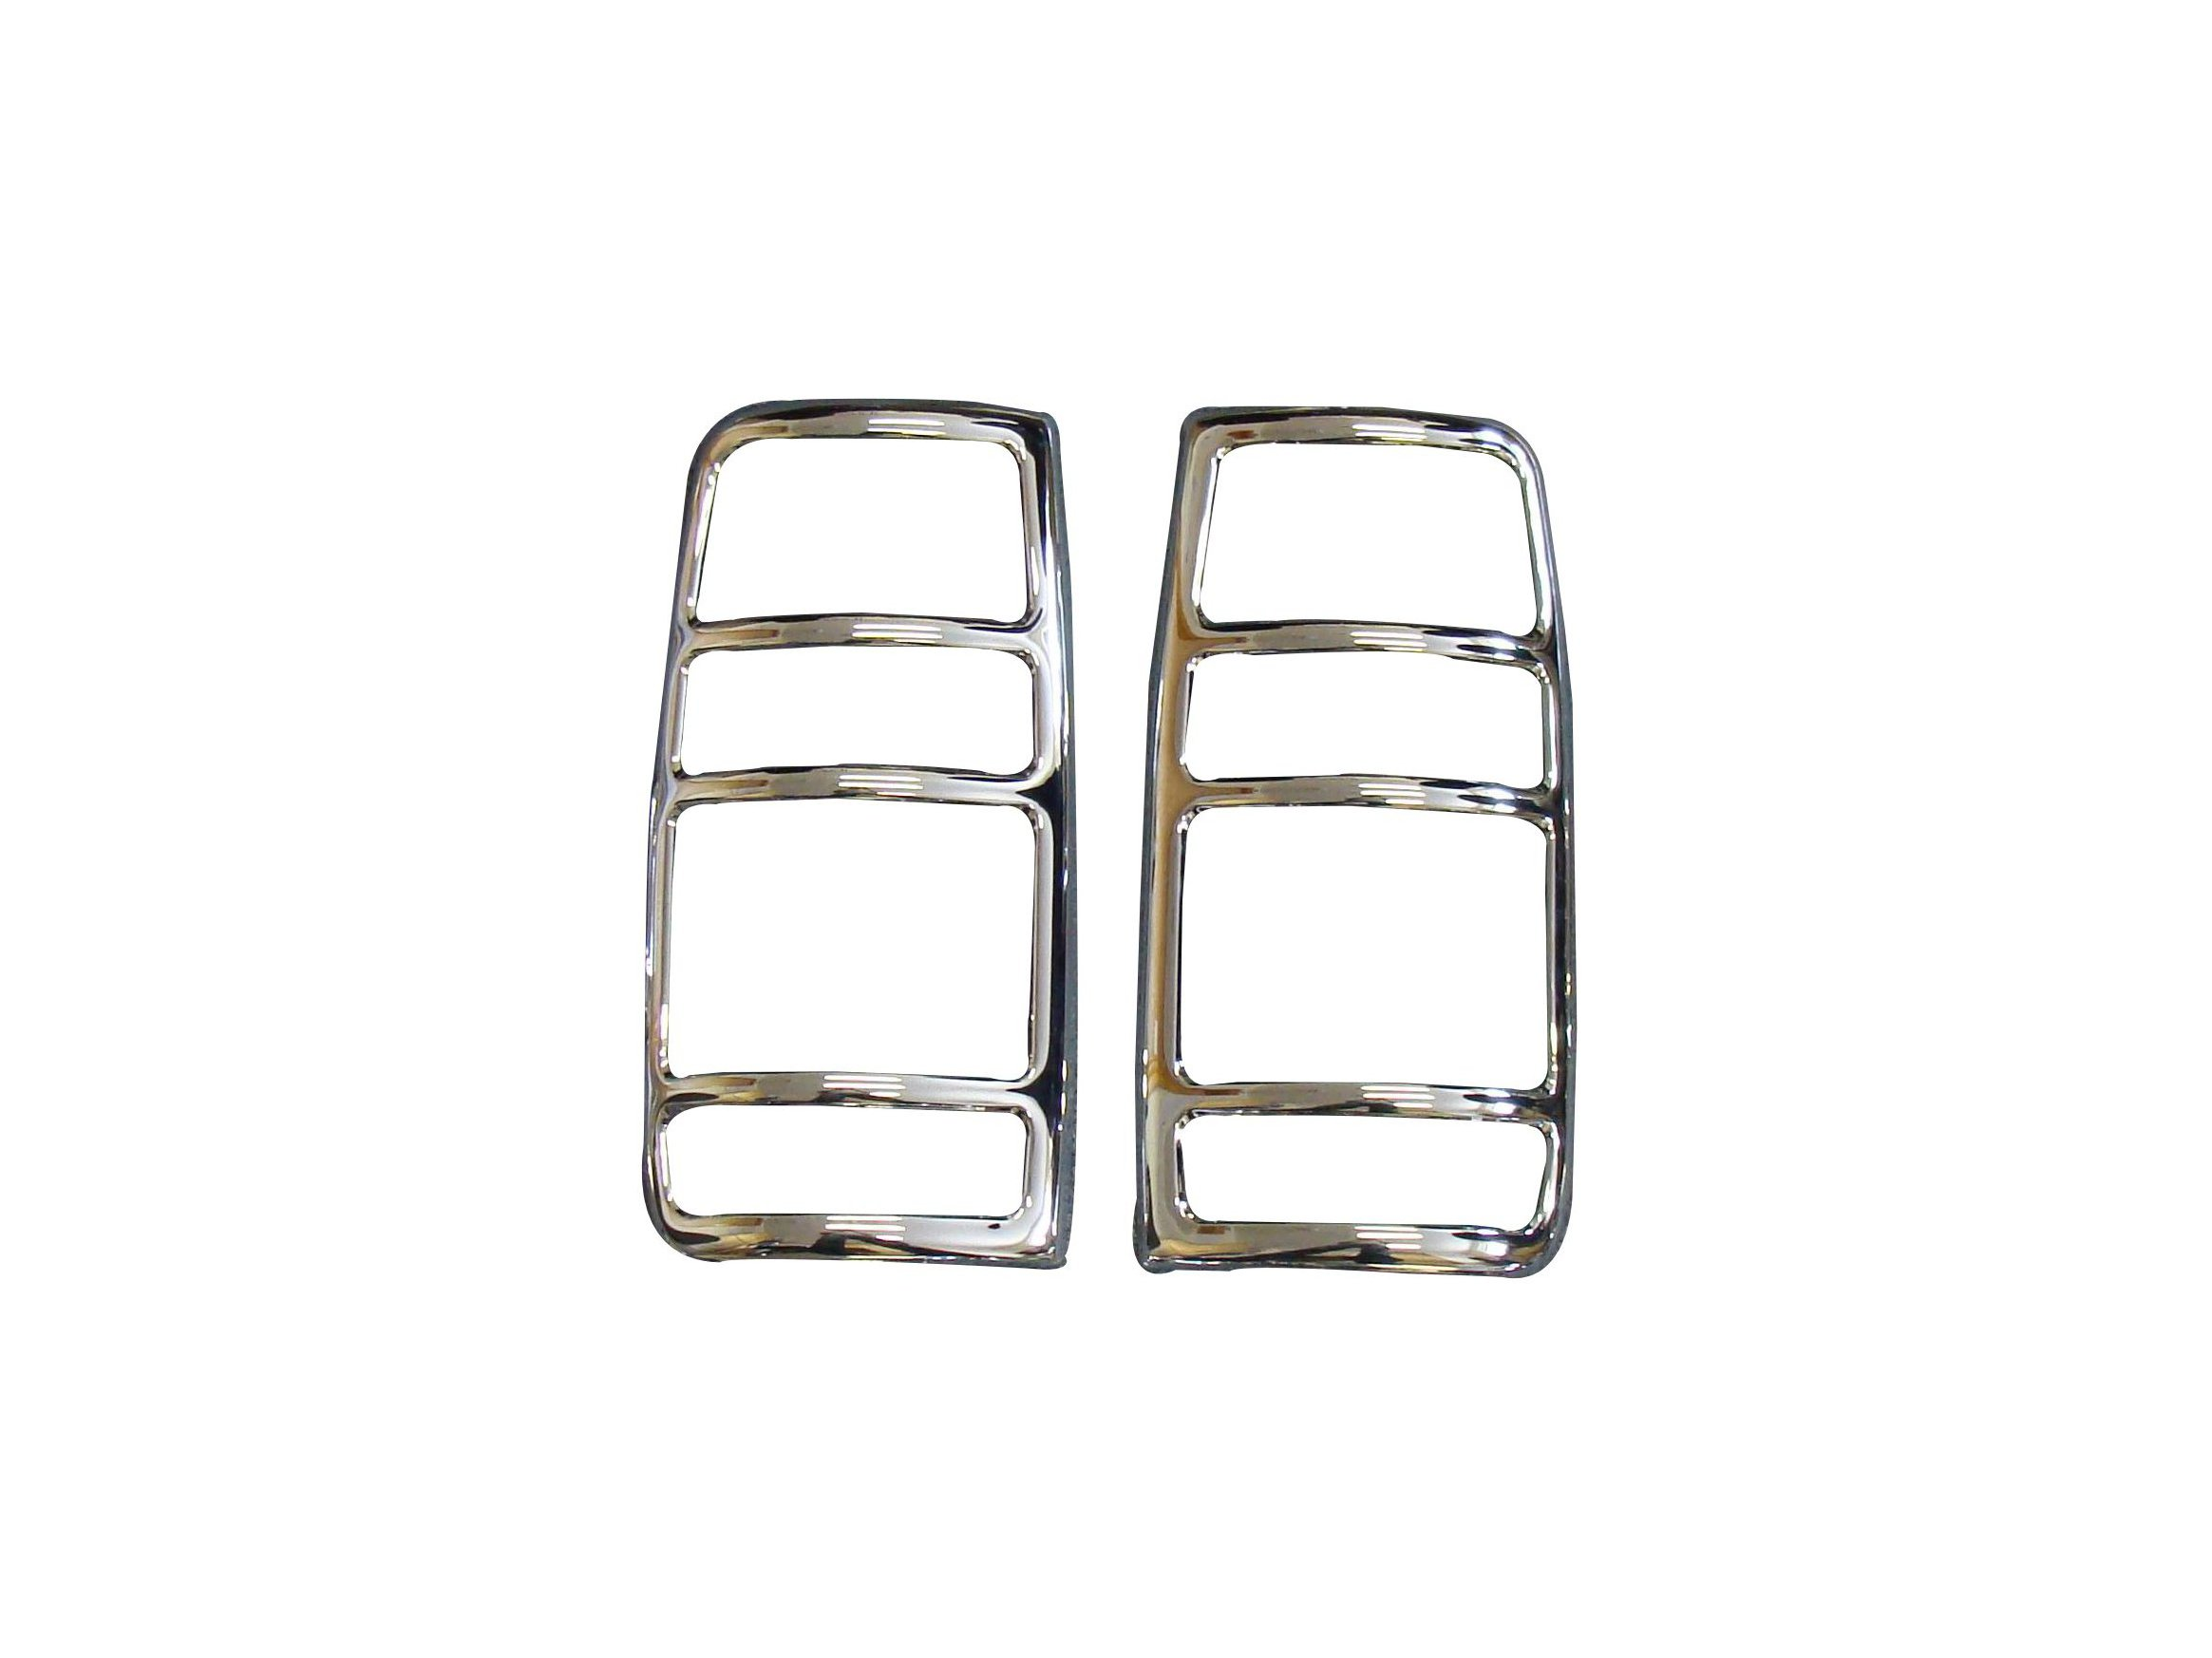 Toyota Land Cruiser Amazon Chromed Rear Tail Light Surrounds